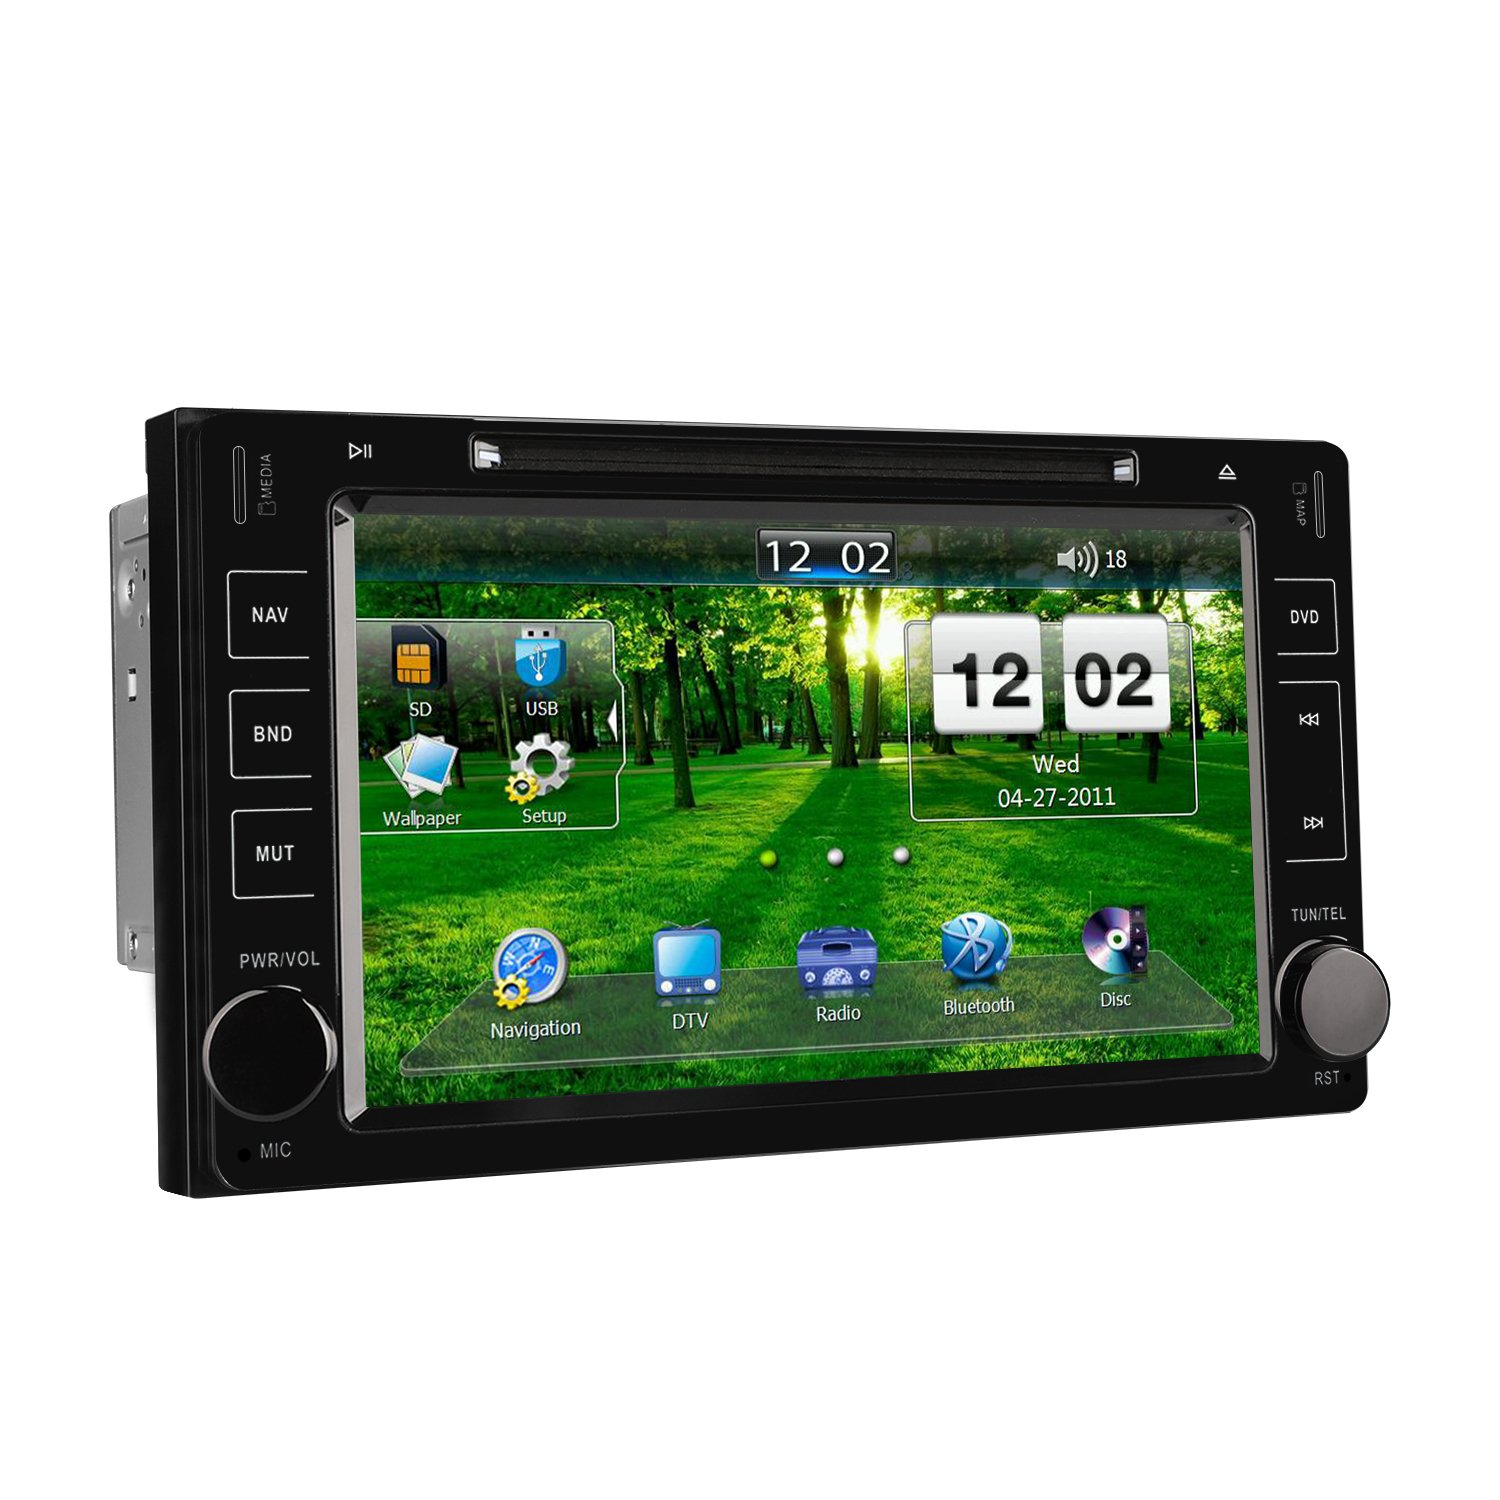 ... Bluetooth 8 Inch Touchscreen Car Radio In-dash GPS Navigation with MirrorLink, FA/AM, AUX, USB/SD, CD/DVD Video Audio Stereo Multimedia Player: Beauty